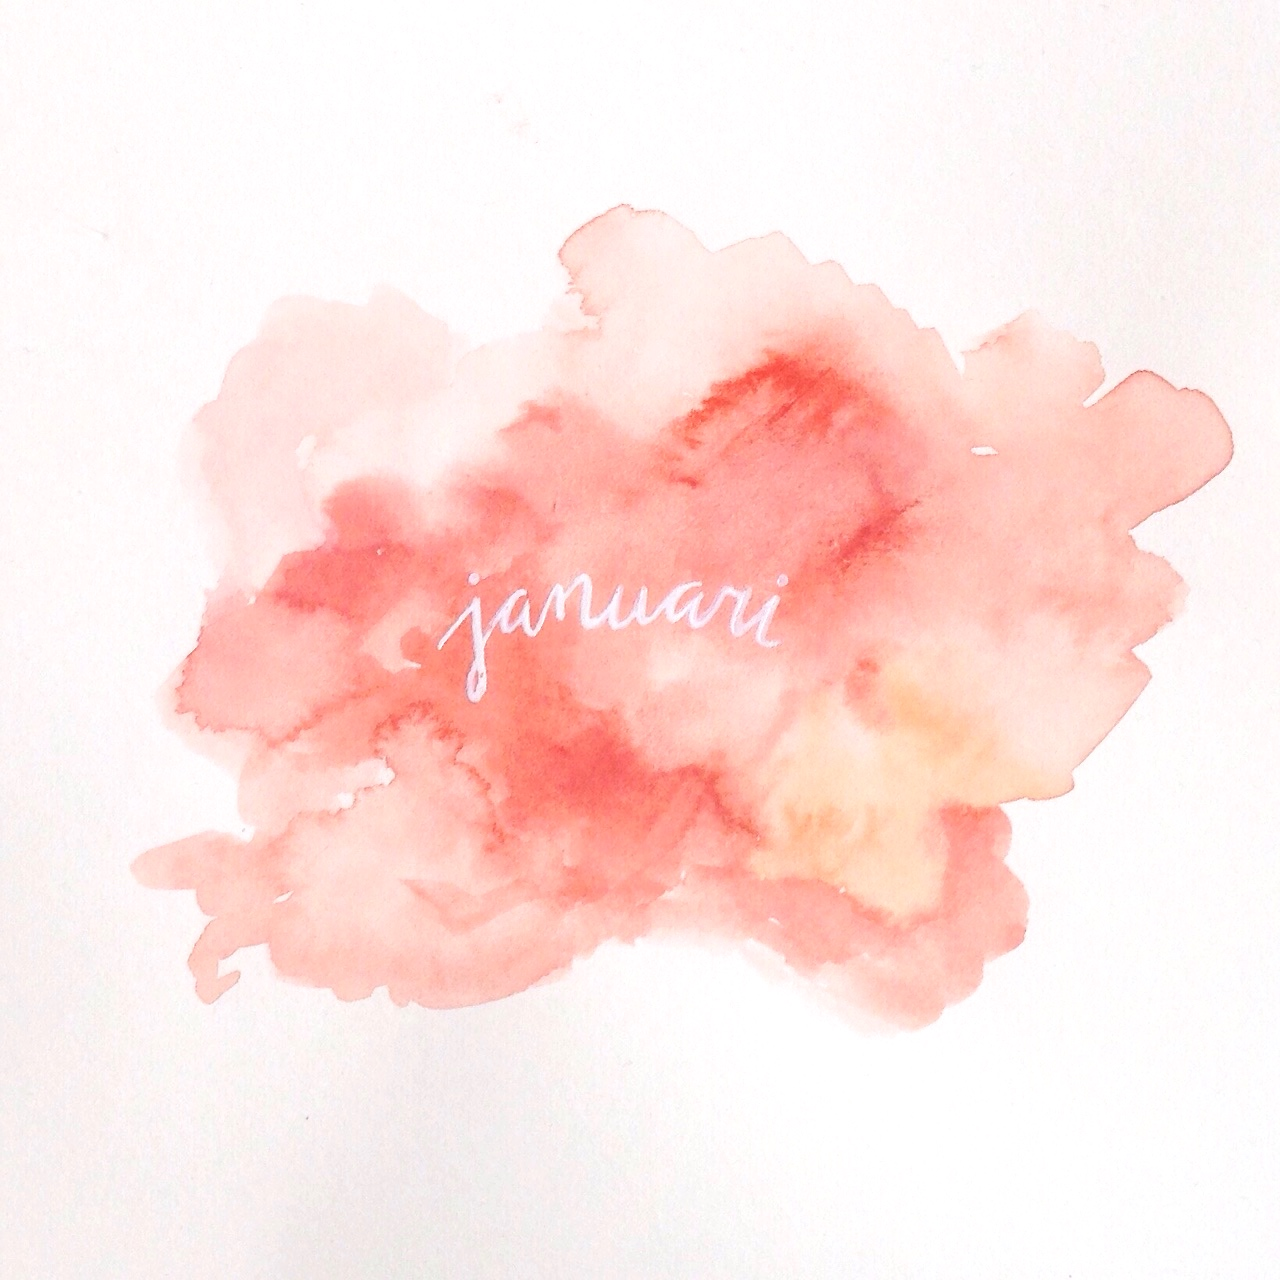 Januari-illustratie